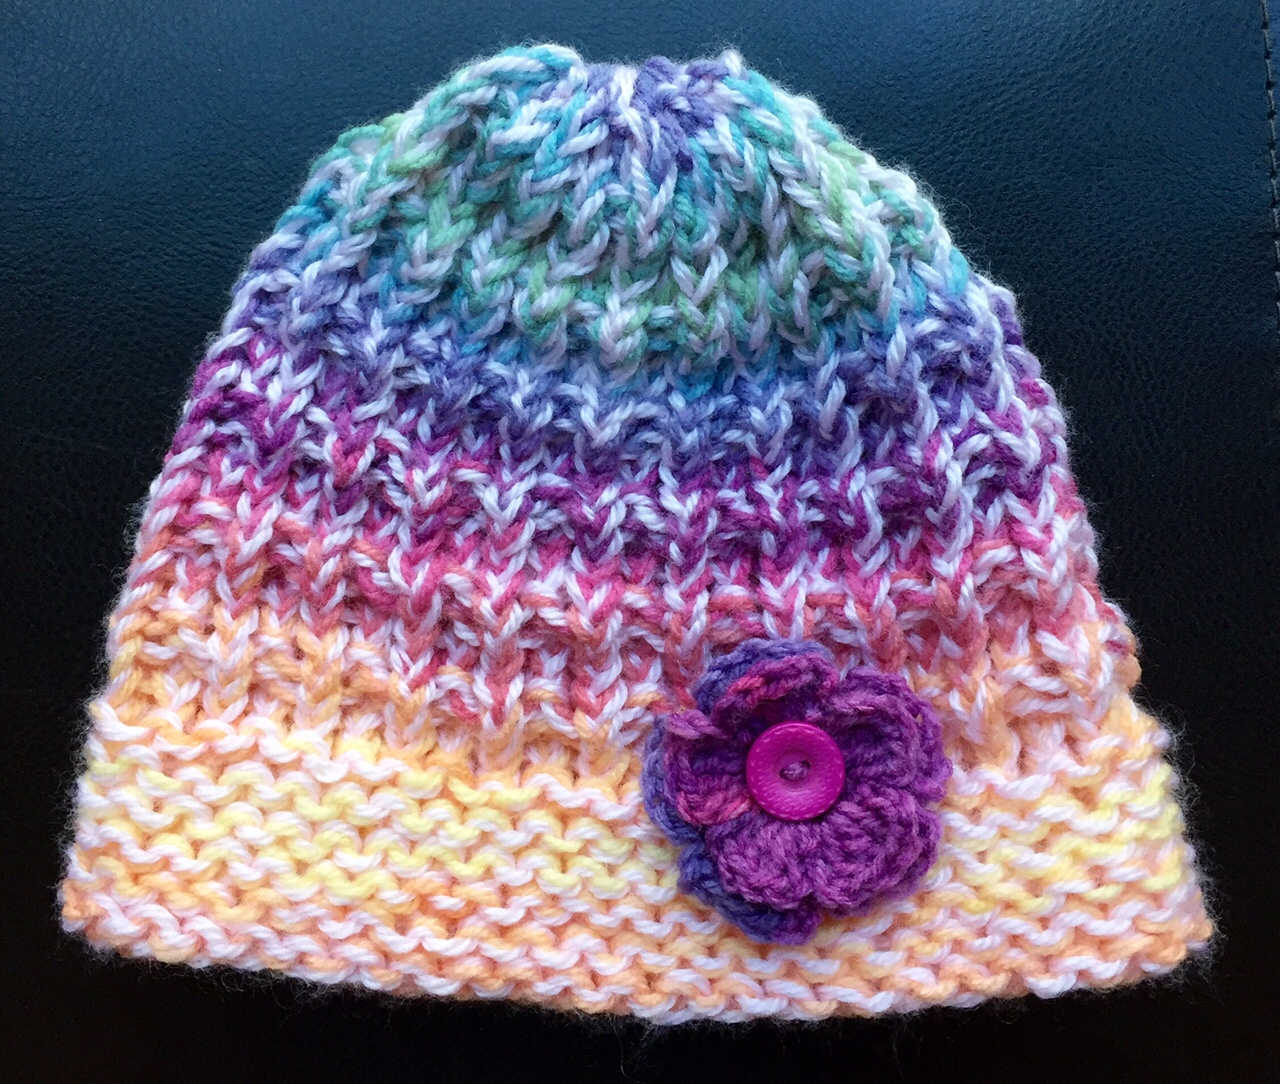 Knitting A Hat On A Round Loom : Knitting with looms